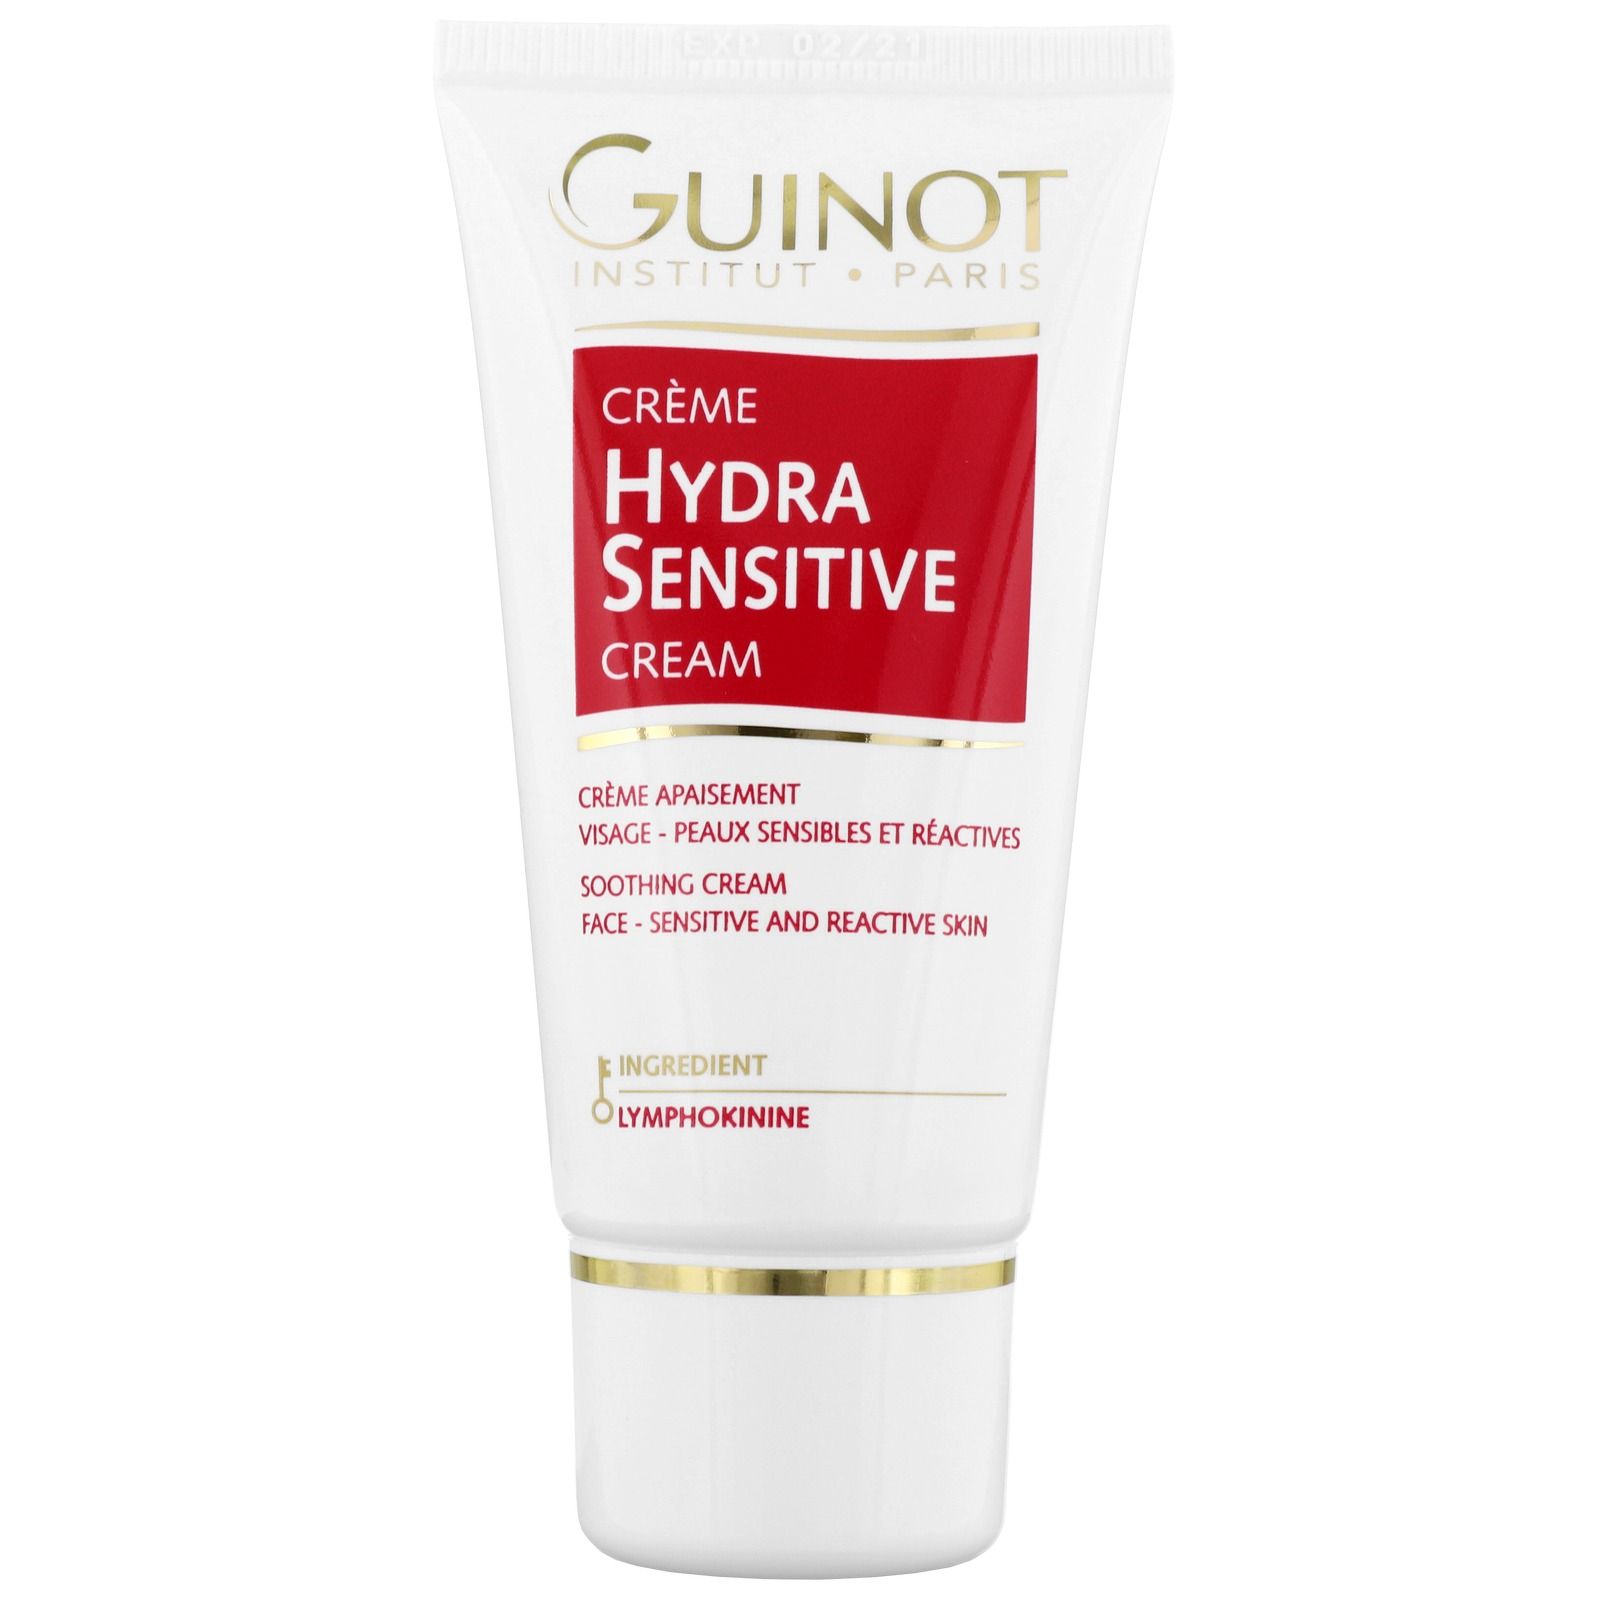 Guinot Creme Hydra Sensitive Face Cream 50ml/1.7oz 6 Pack - Jason Sun Facial Sunscreen  SPF 20 4.50 oz